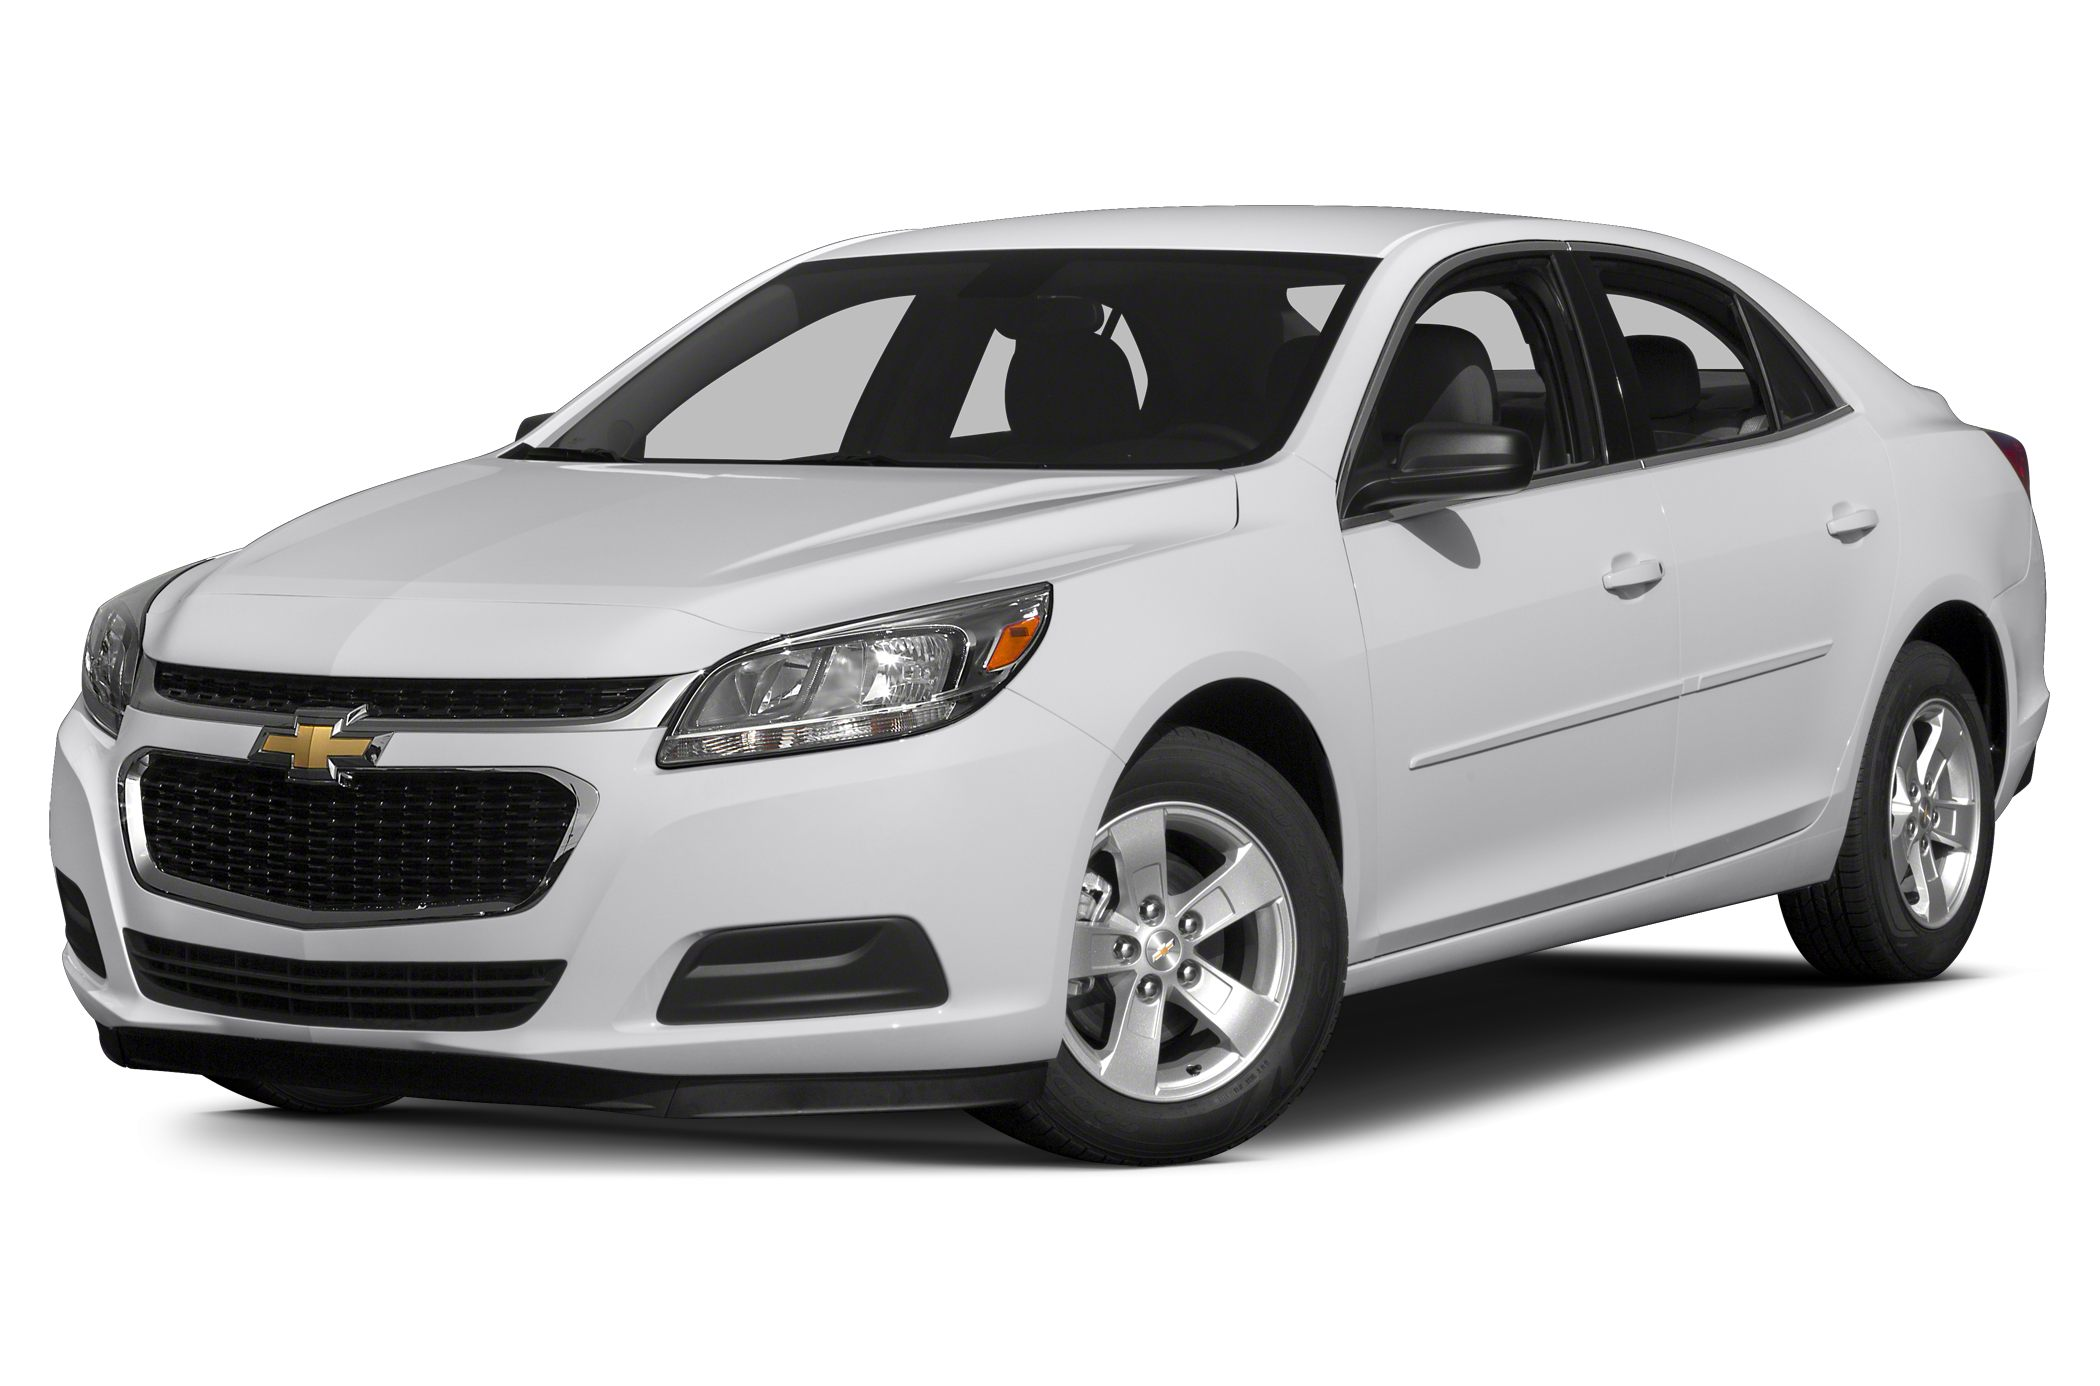 2015 Chevrolet Malibu 2LT Sedan for sale in Fremont for $29,795 with 0 miles